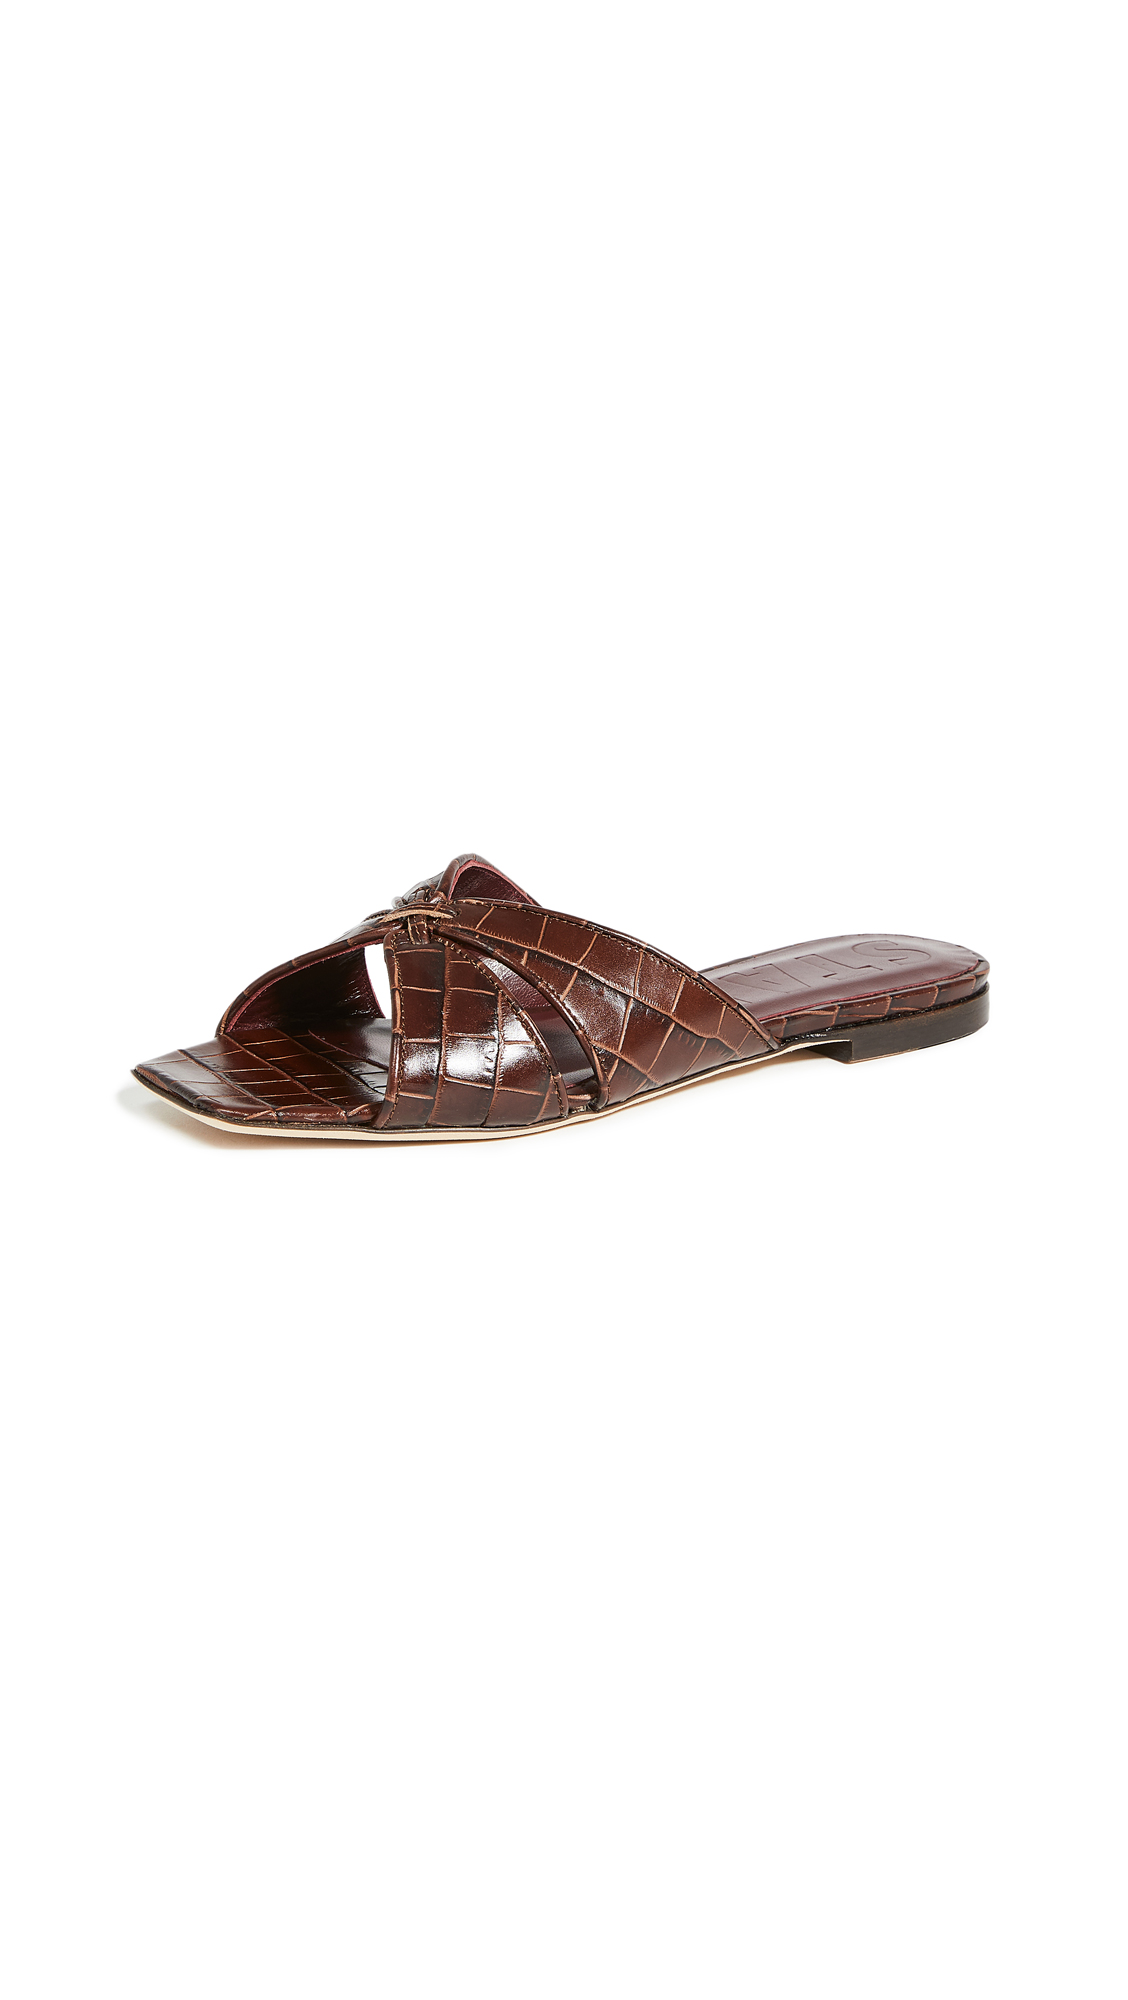 STAUD Chris Sandals